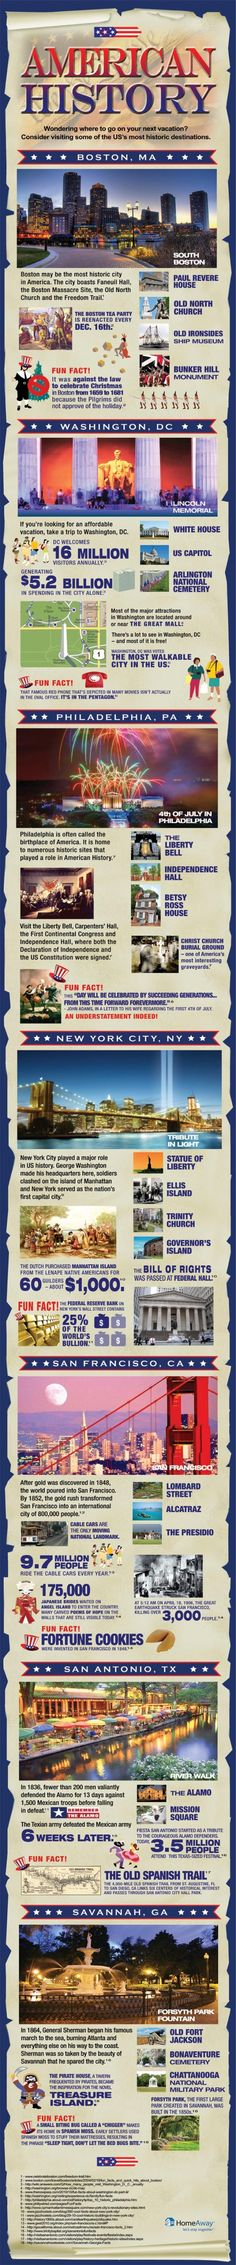 American History - Walk through history on vacation in these destinations - Infographic - Travel